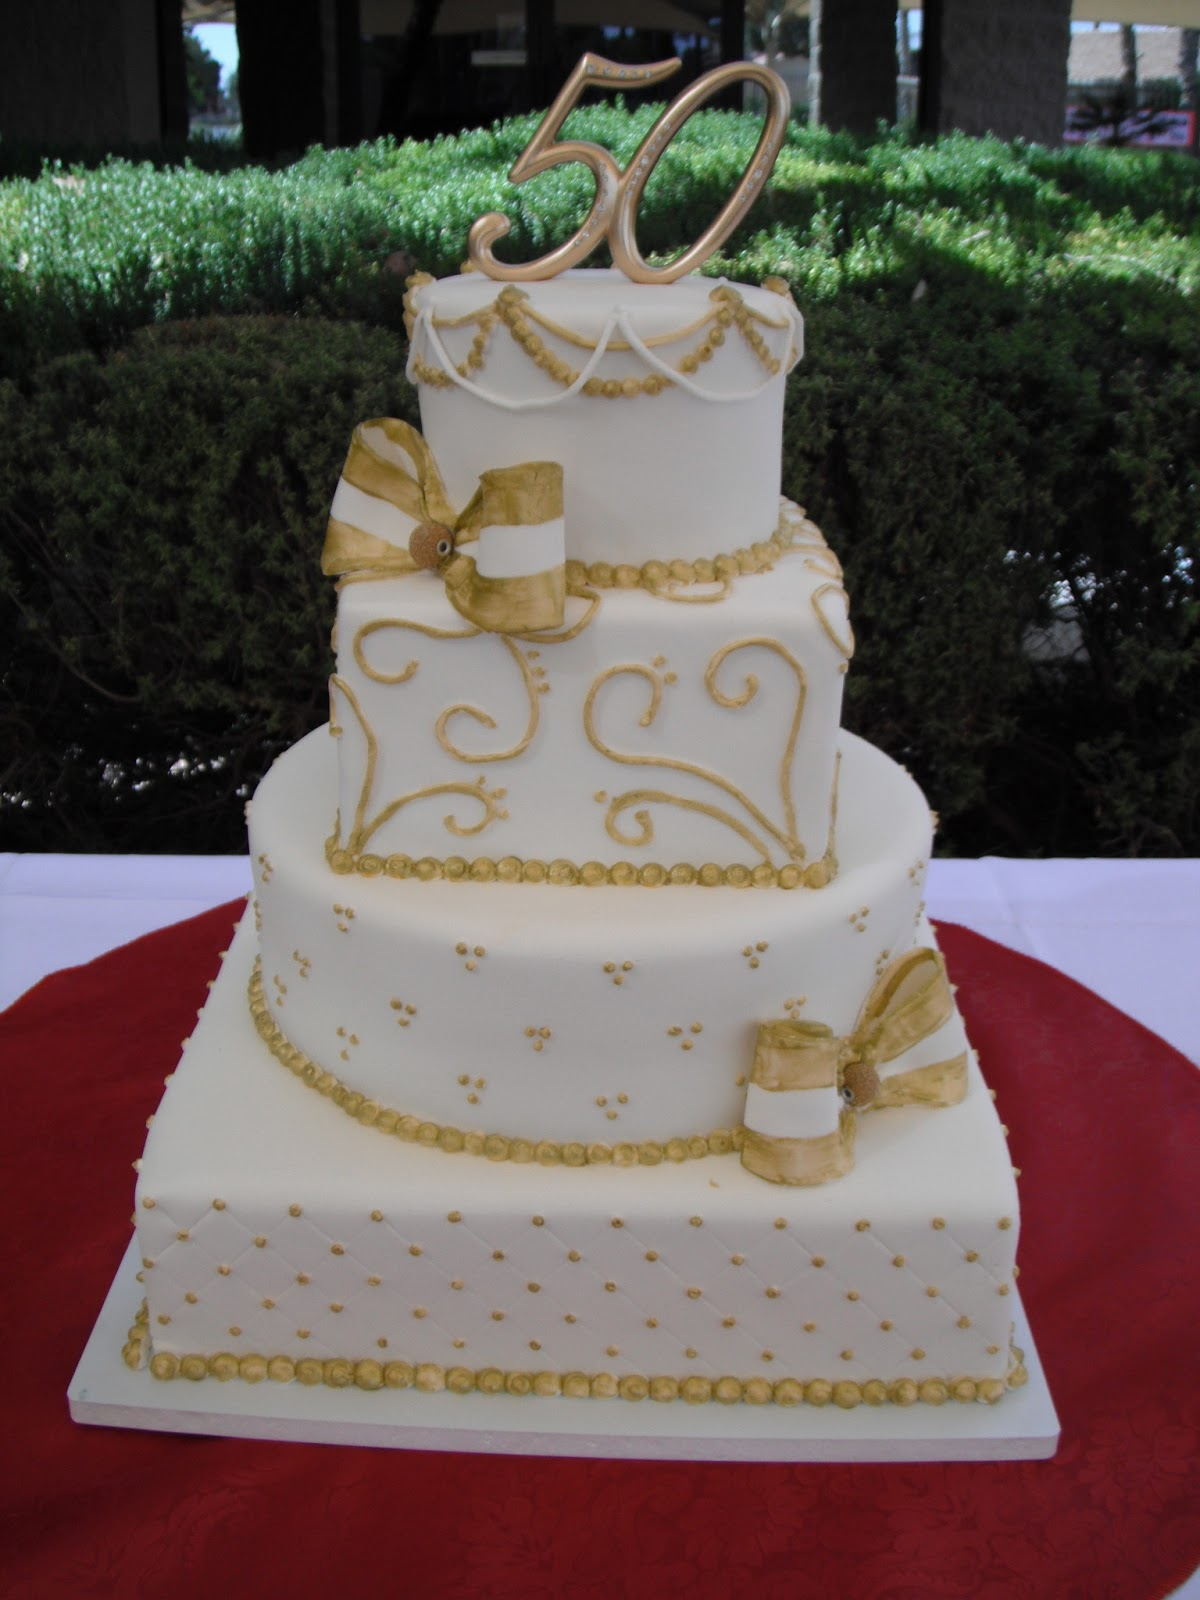 Cassy s Cakes: 50th wedding anniversary cake